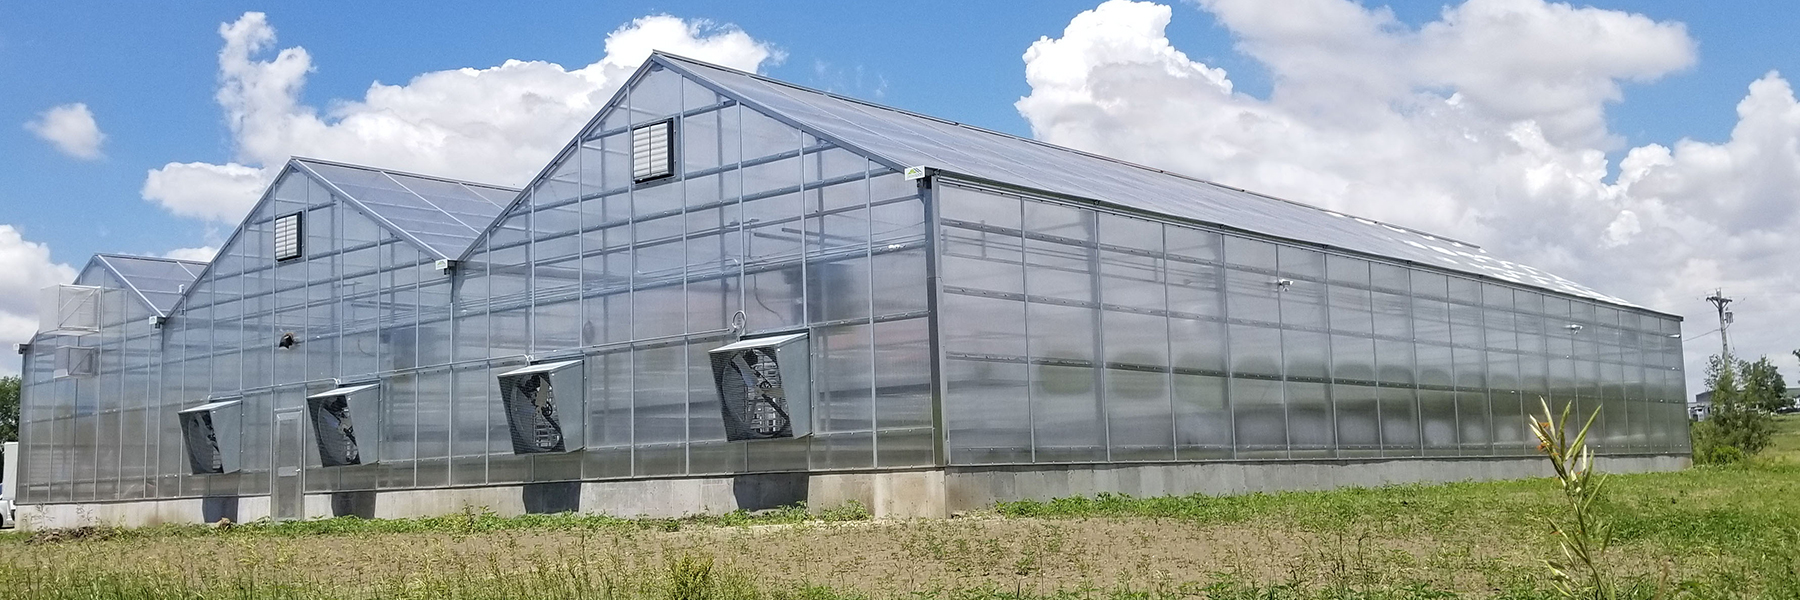 GS S2000 Greenhouse